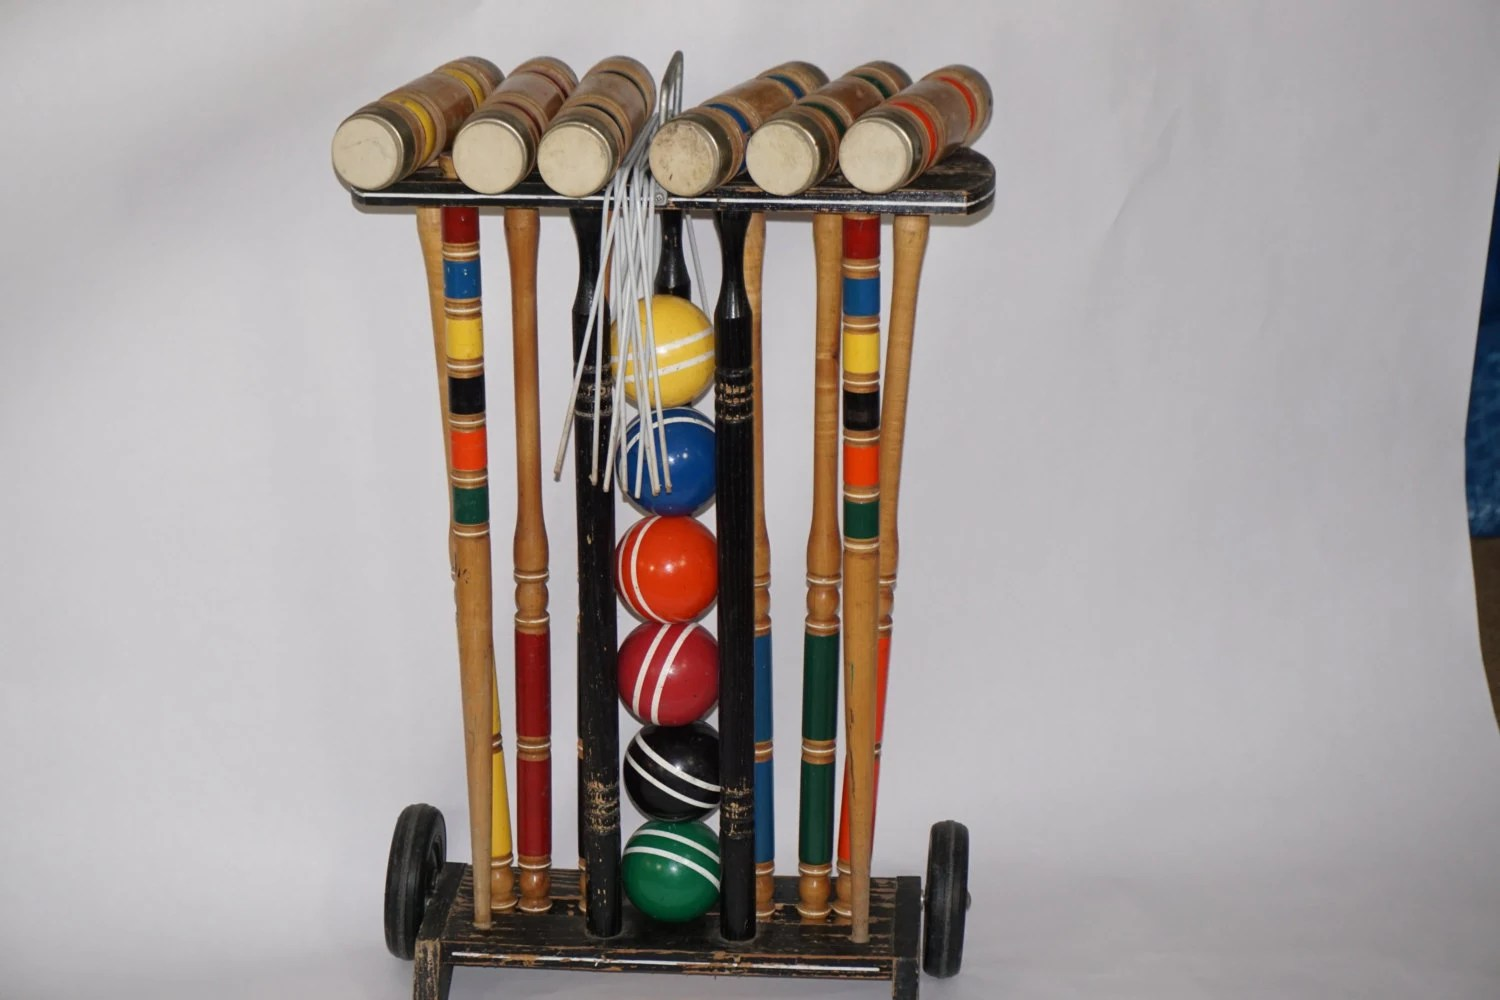 CROQUET Set On Wheeled Cart 6 Player Vintage Wooden Croquet